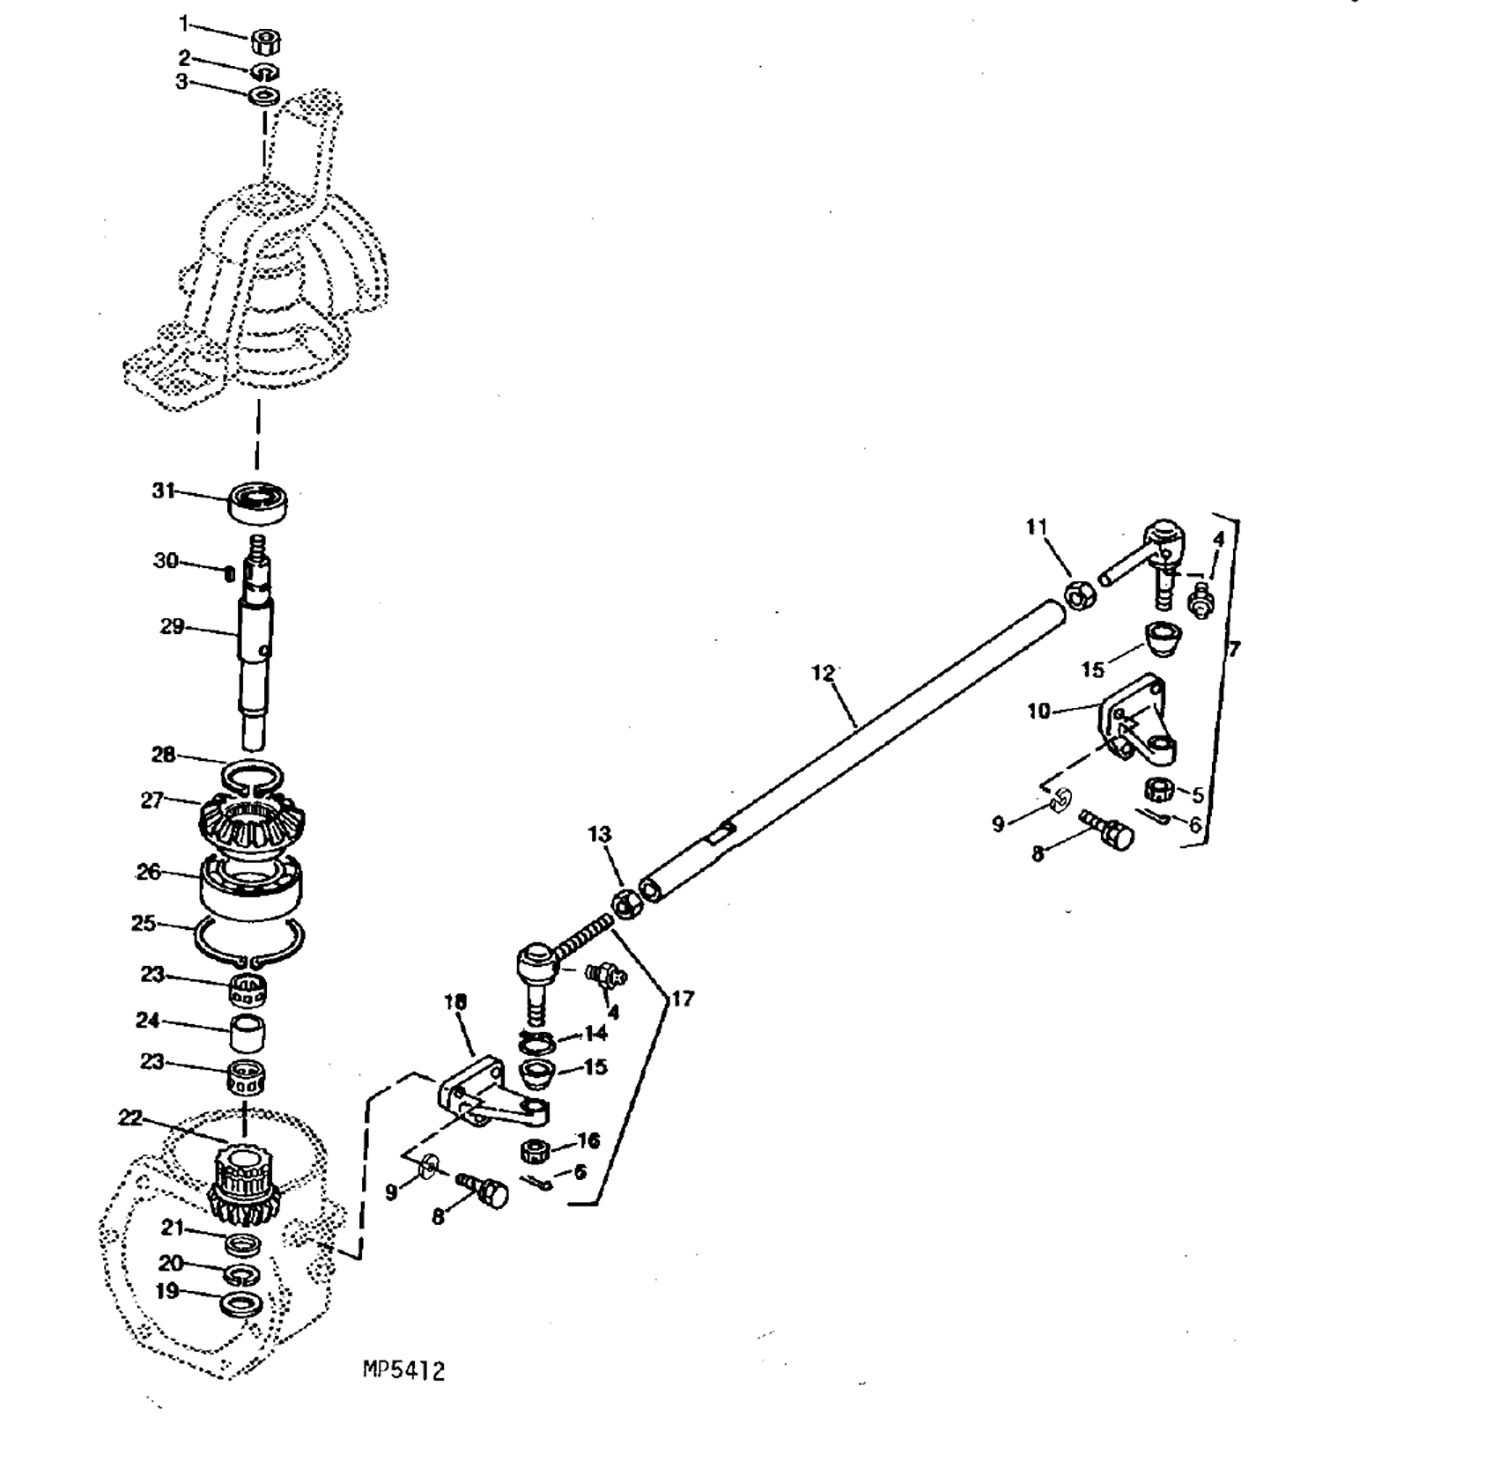 850 axle gears_2 buy your compact tractor parts online \u2022 weaver's compact tractor parts John Deere 855 Parts Diagram at bakdesigns.co